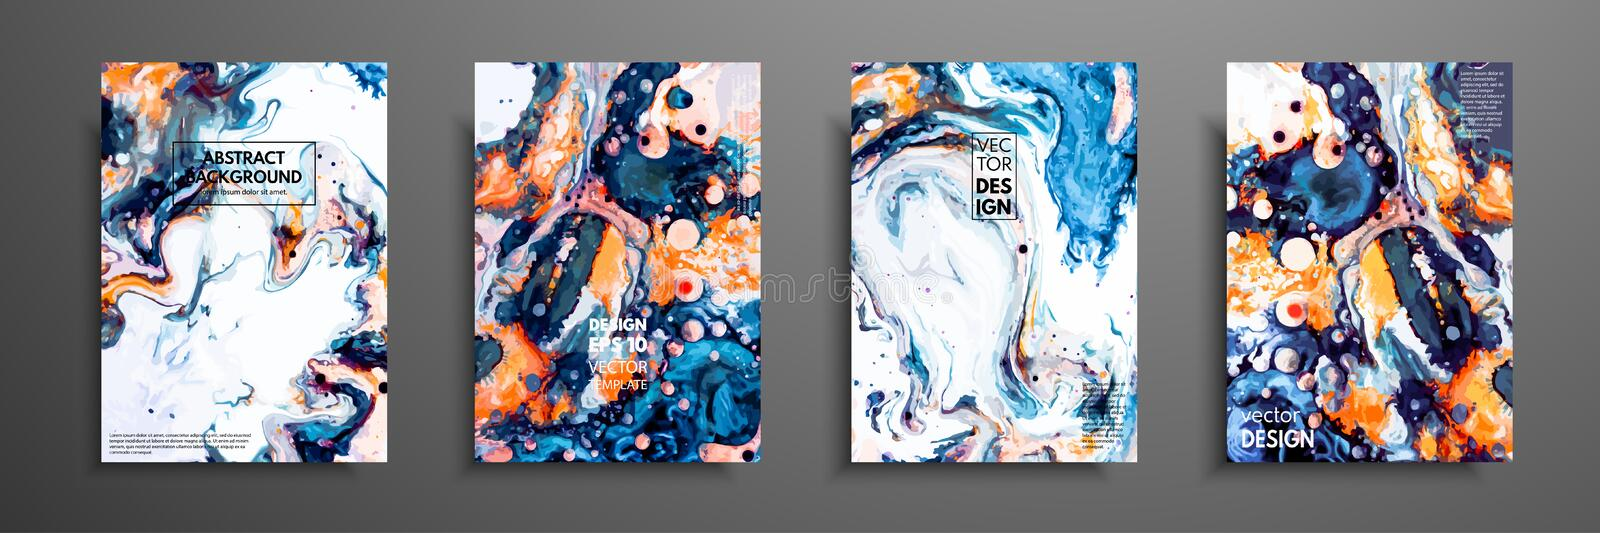 Mixture of acrylic paints. Liquid marble texture. Fluid art. Applicable for design cover, presentation, invitation, flyer, annual royalty free illustration